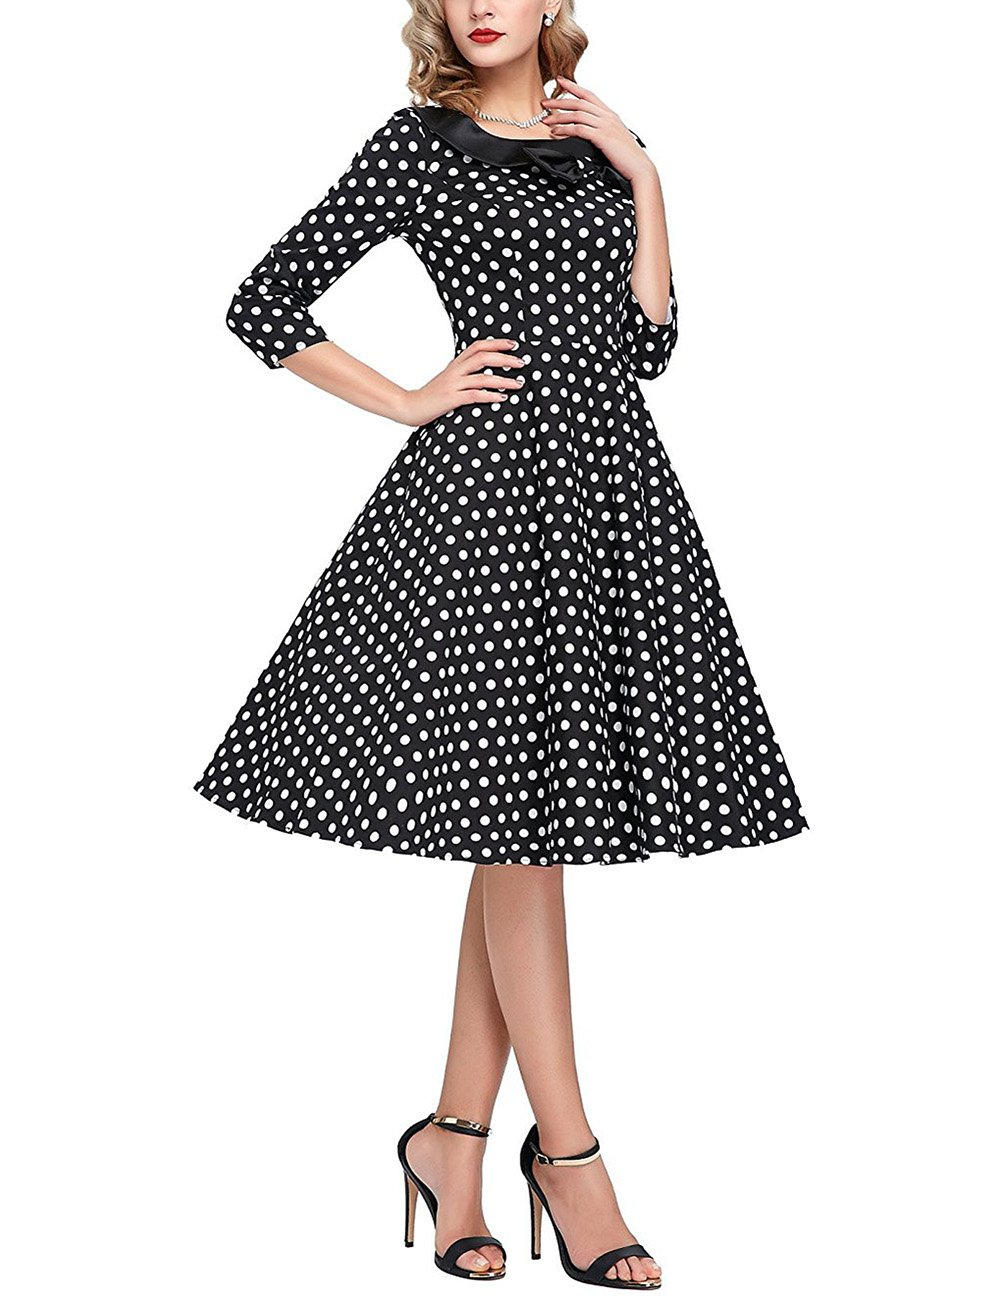 GlorySunshine Women's Vintage Swing Polka Dot Dress 4